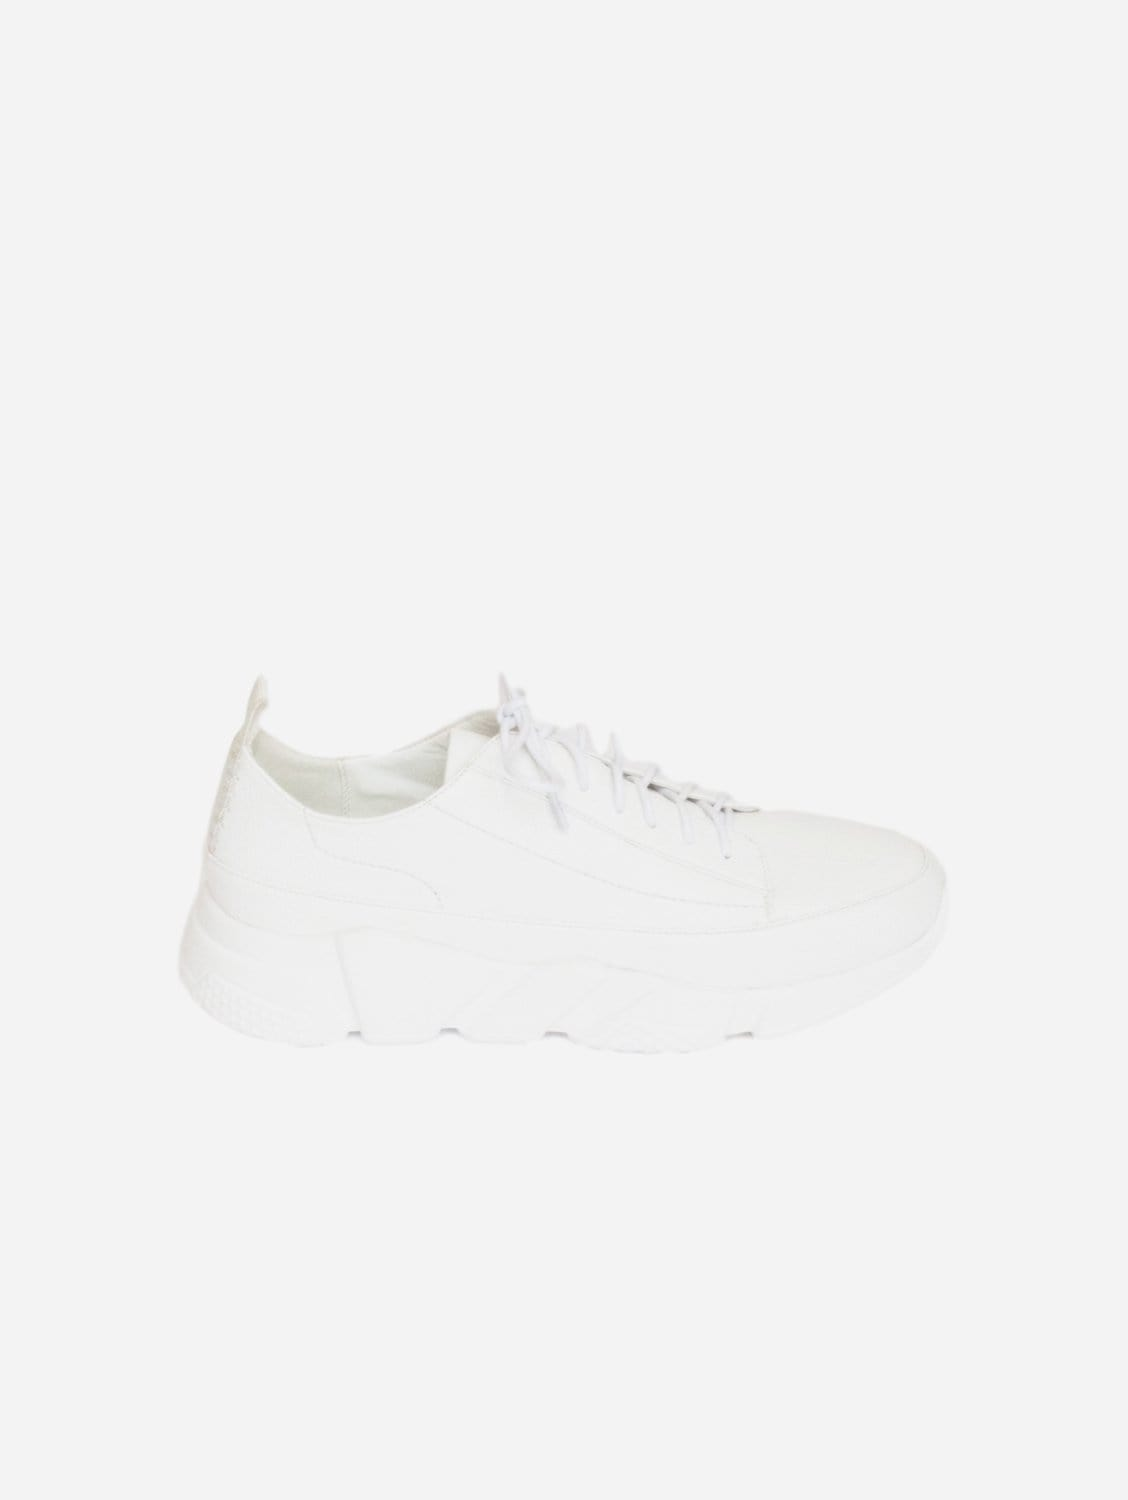 Gia Aspro Up-Cycled Vegan Leather Trainer | White